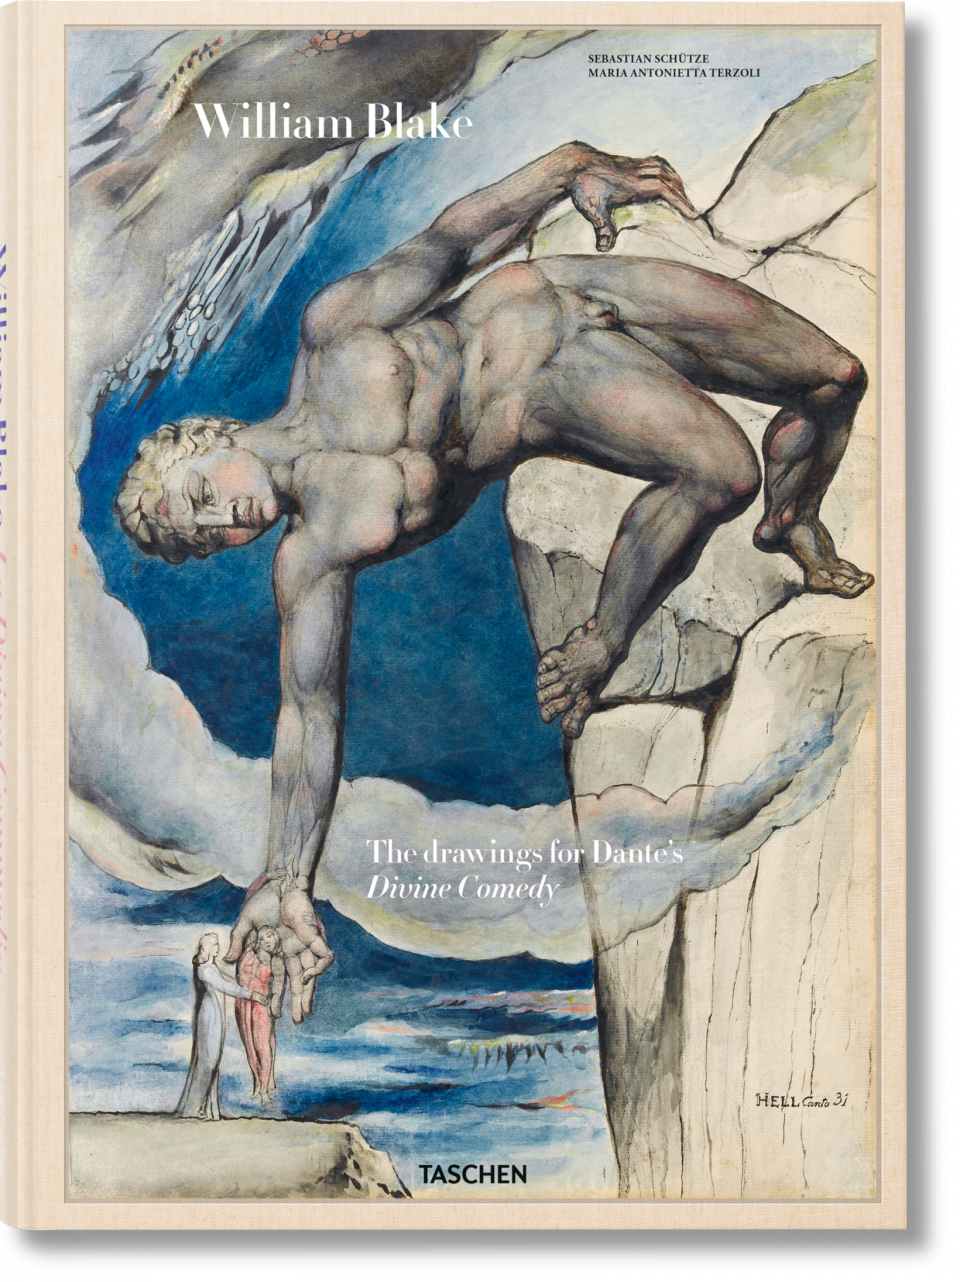 Antaeus Dante/'s Divine Comedy William Blake Illustrations Fine Art Print